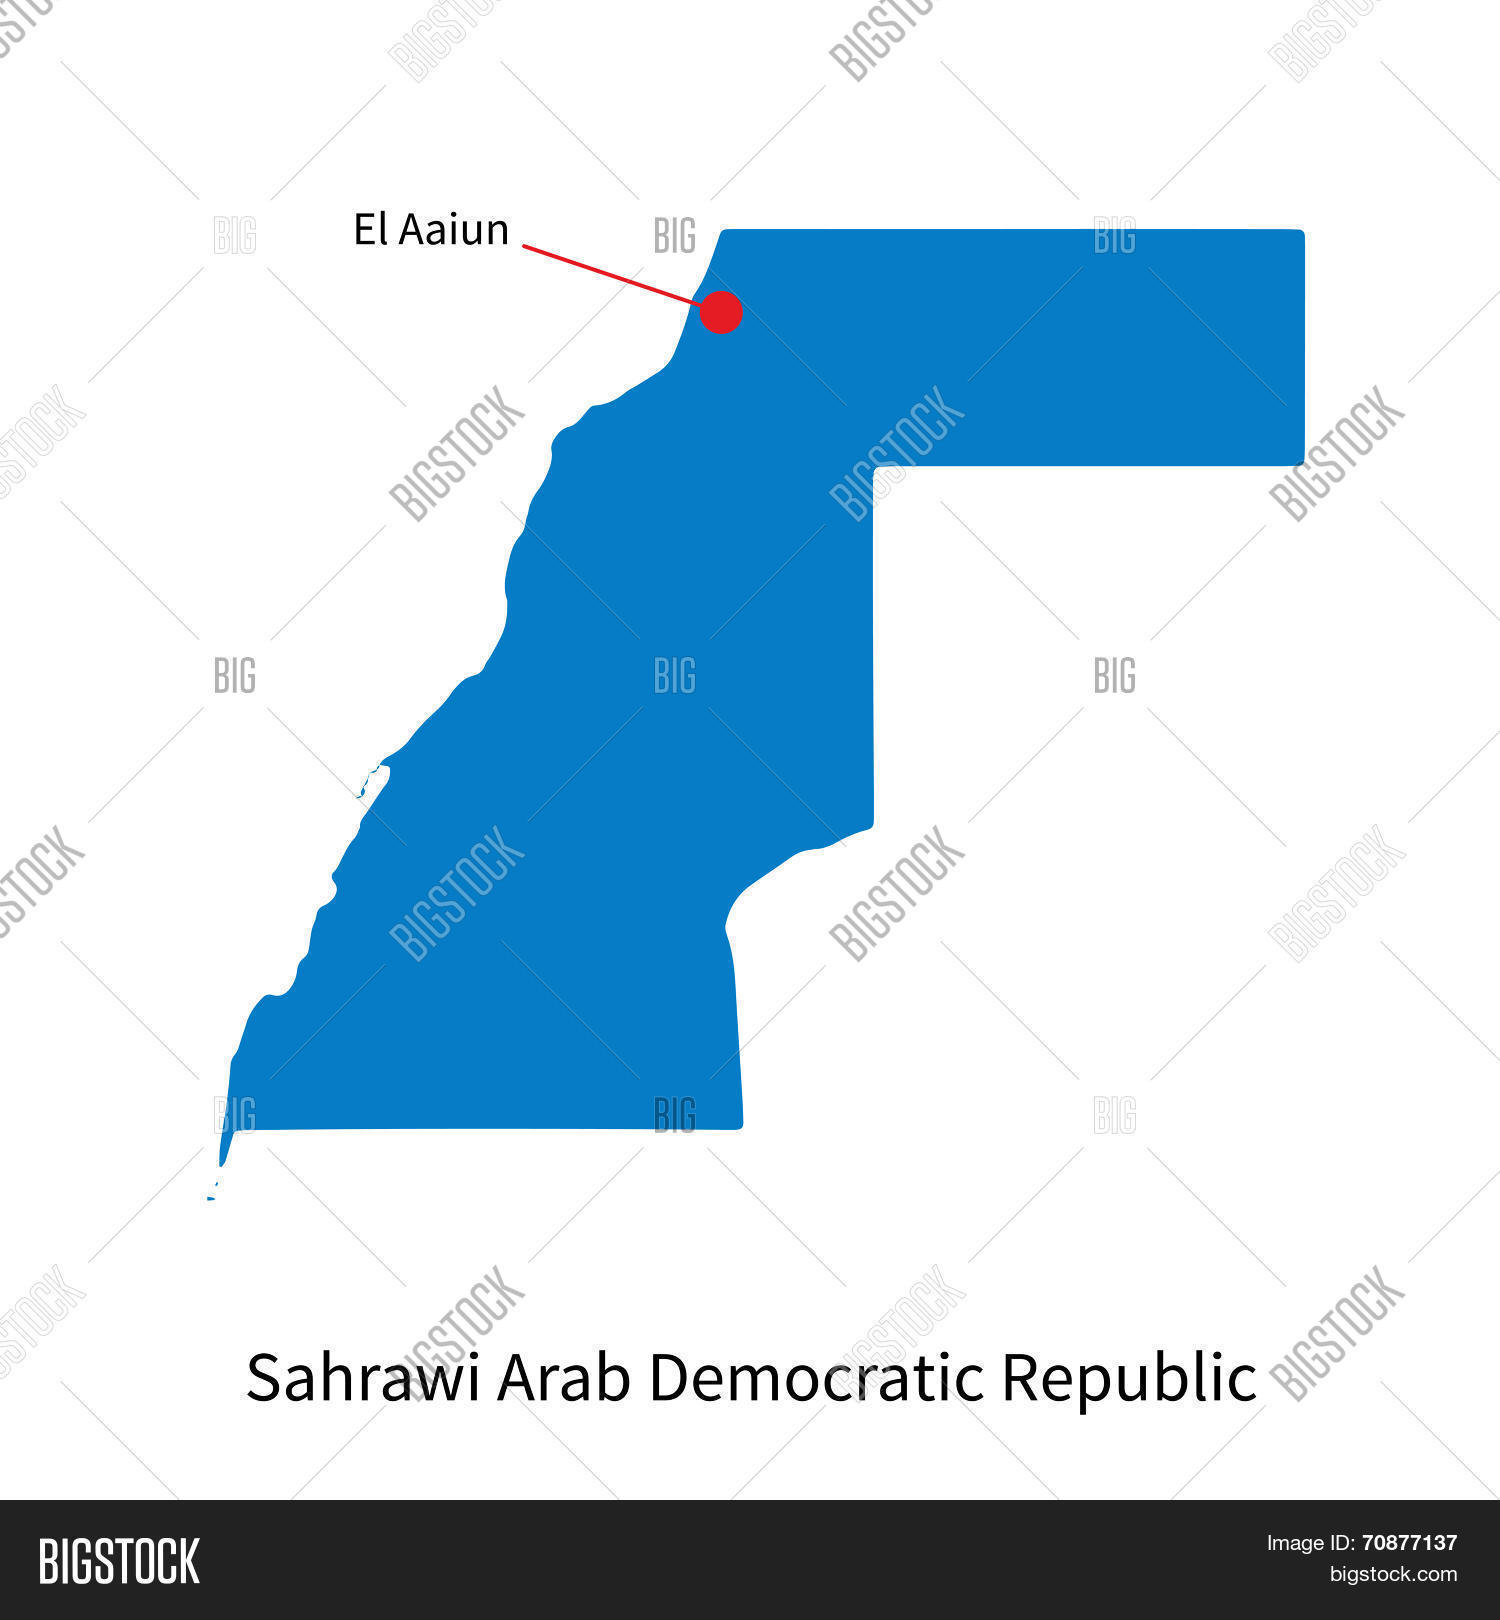 Detailed vector map vector photo free trial bigstock detailed vector map of sahrawi arab democratic republic and capital city el aaiun gumiabroncs Images